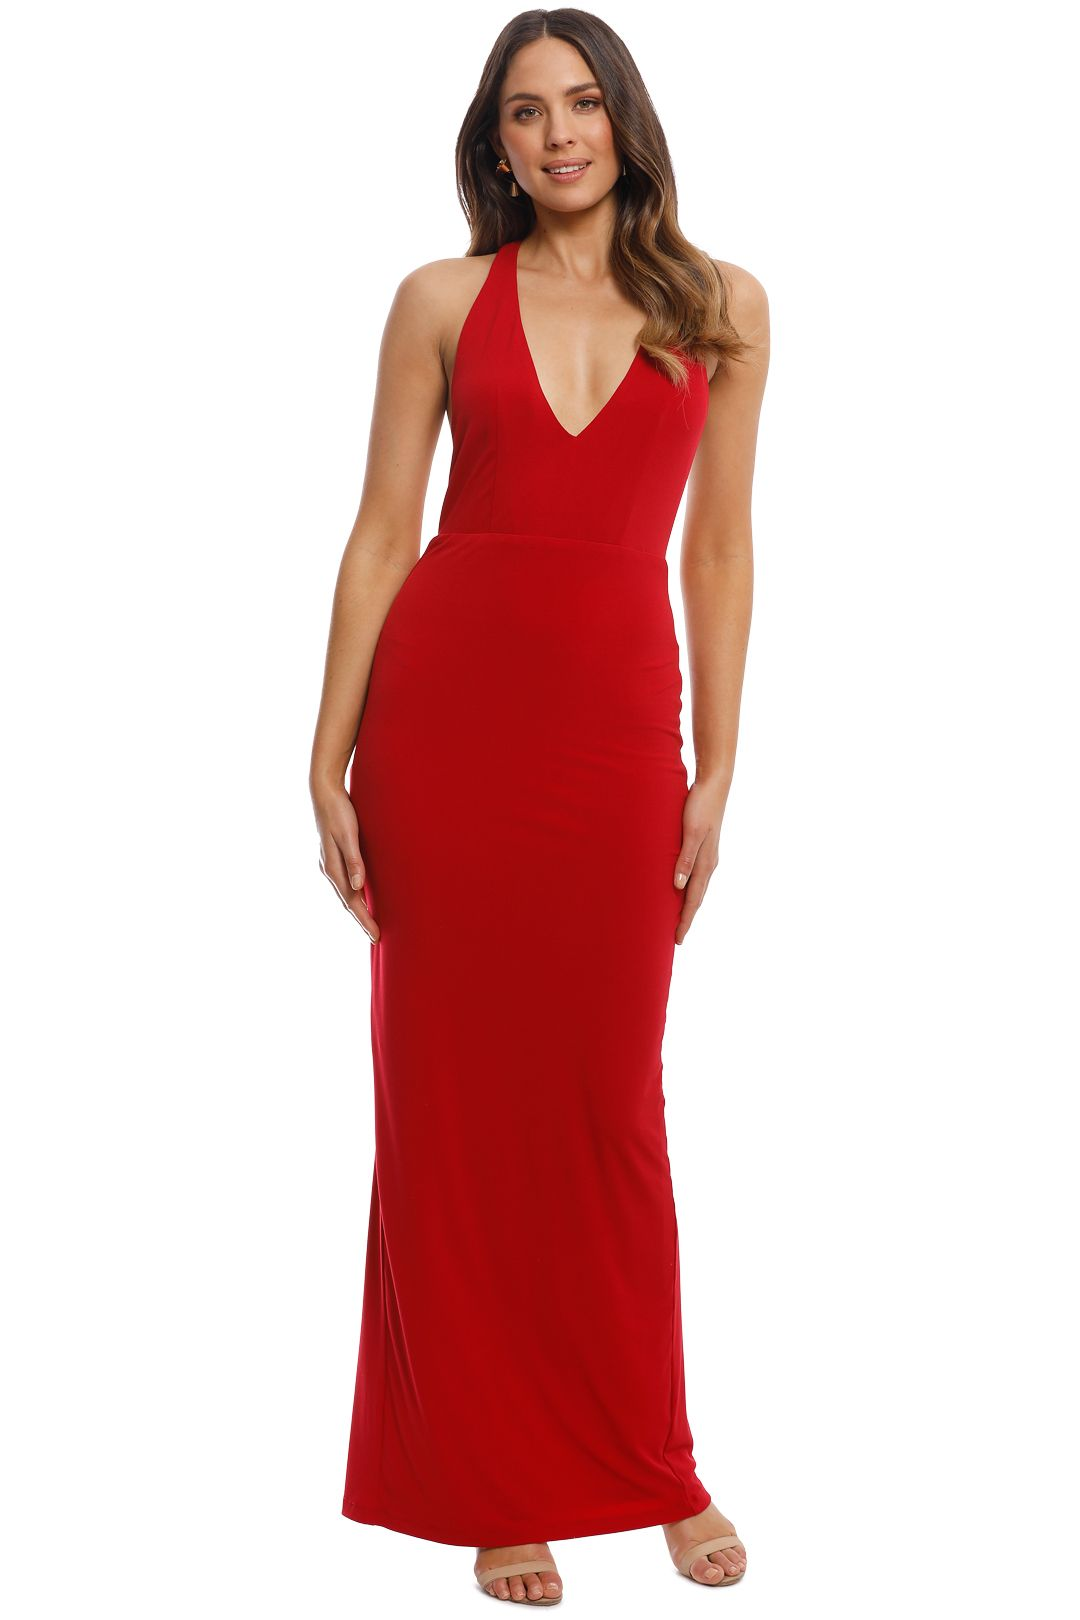 George - Priscilla Gown - Red - Front